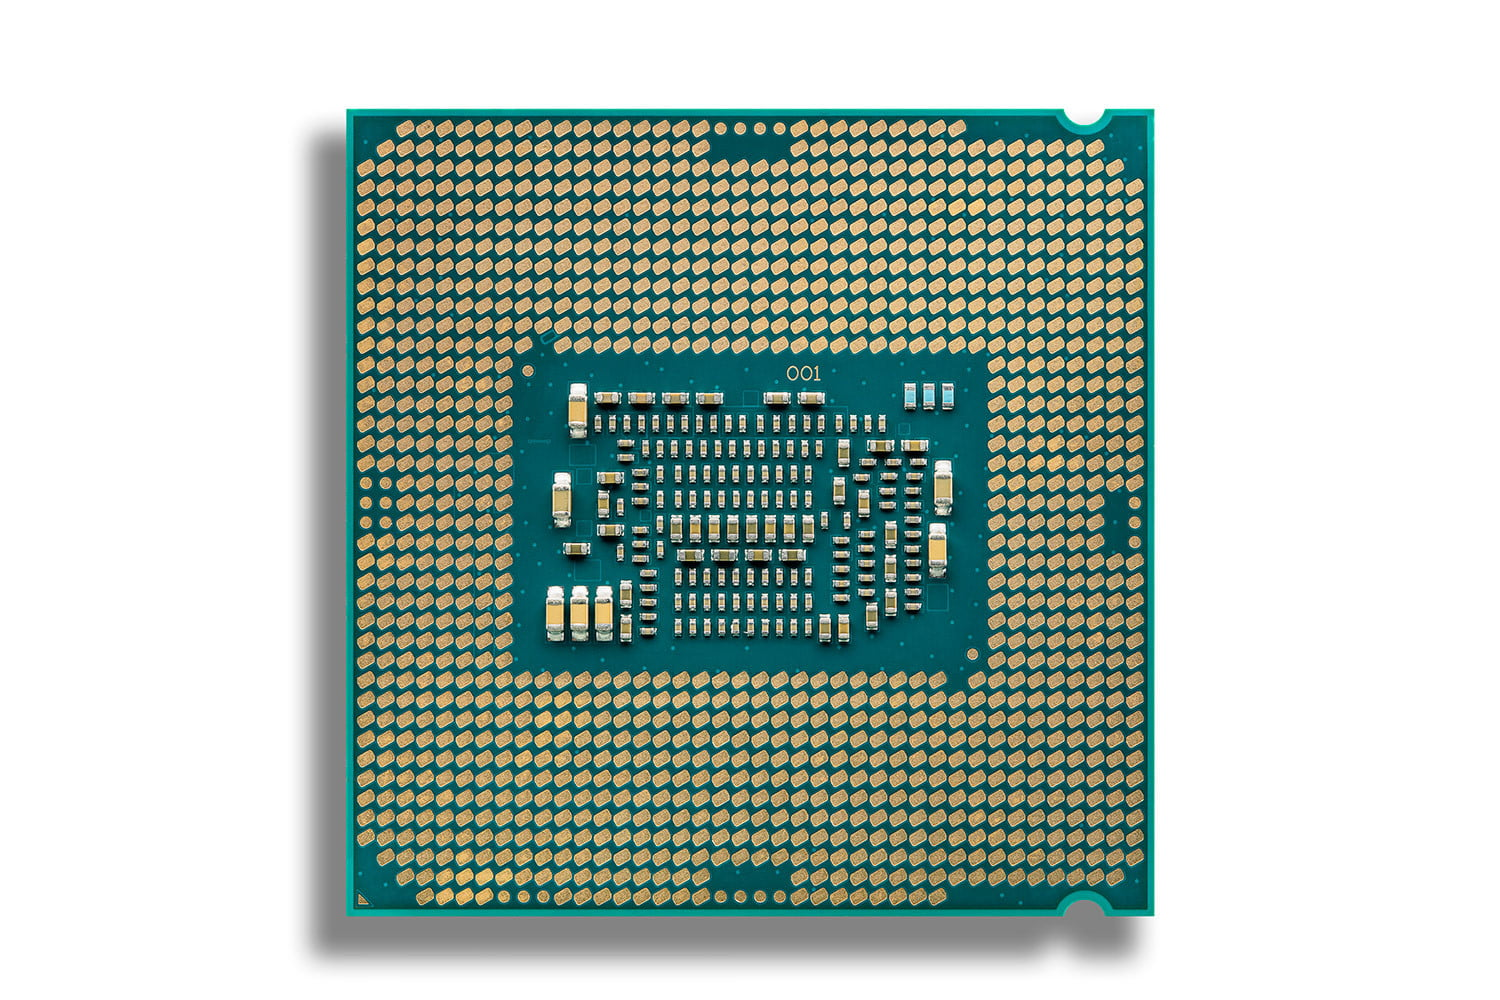 7th generation intel core ces 2017 kby lake s back straight 05 whitebkg